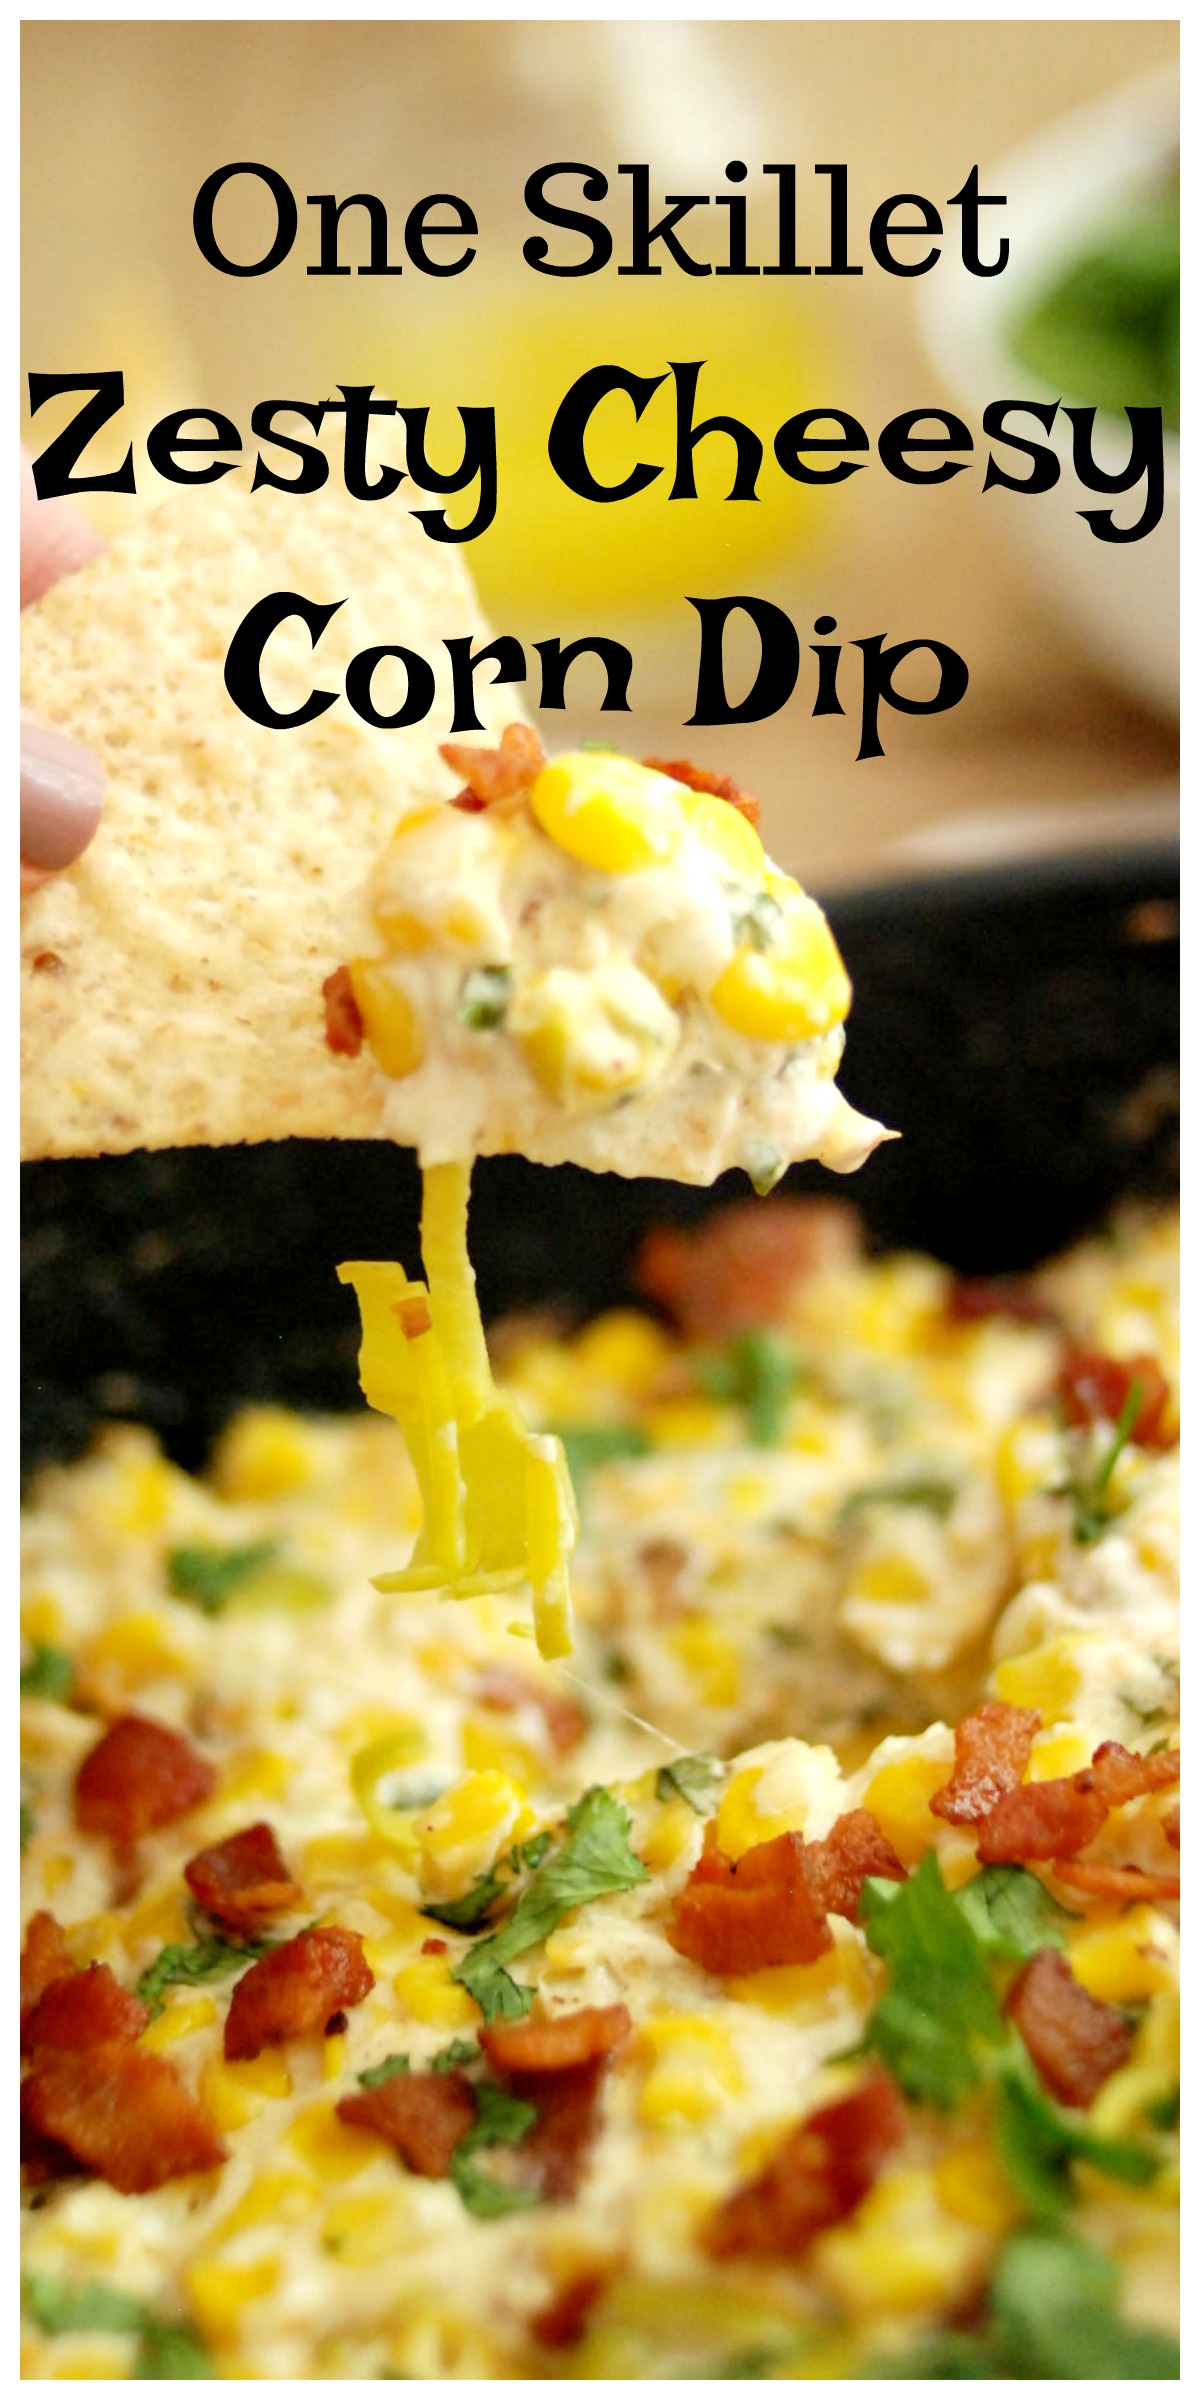 One Skillet Zesty Cheezy Corn Dip #AD @Mezzetta So delicious and super yummy. You won't be able to eat just one bite!